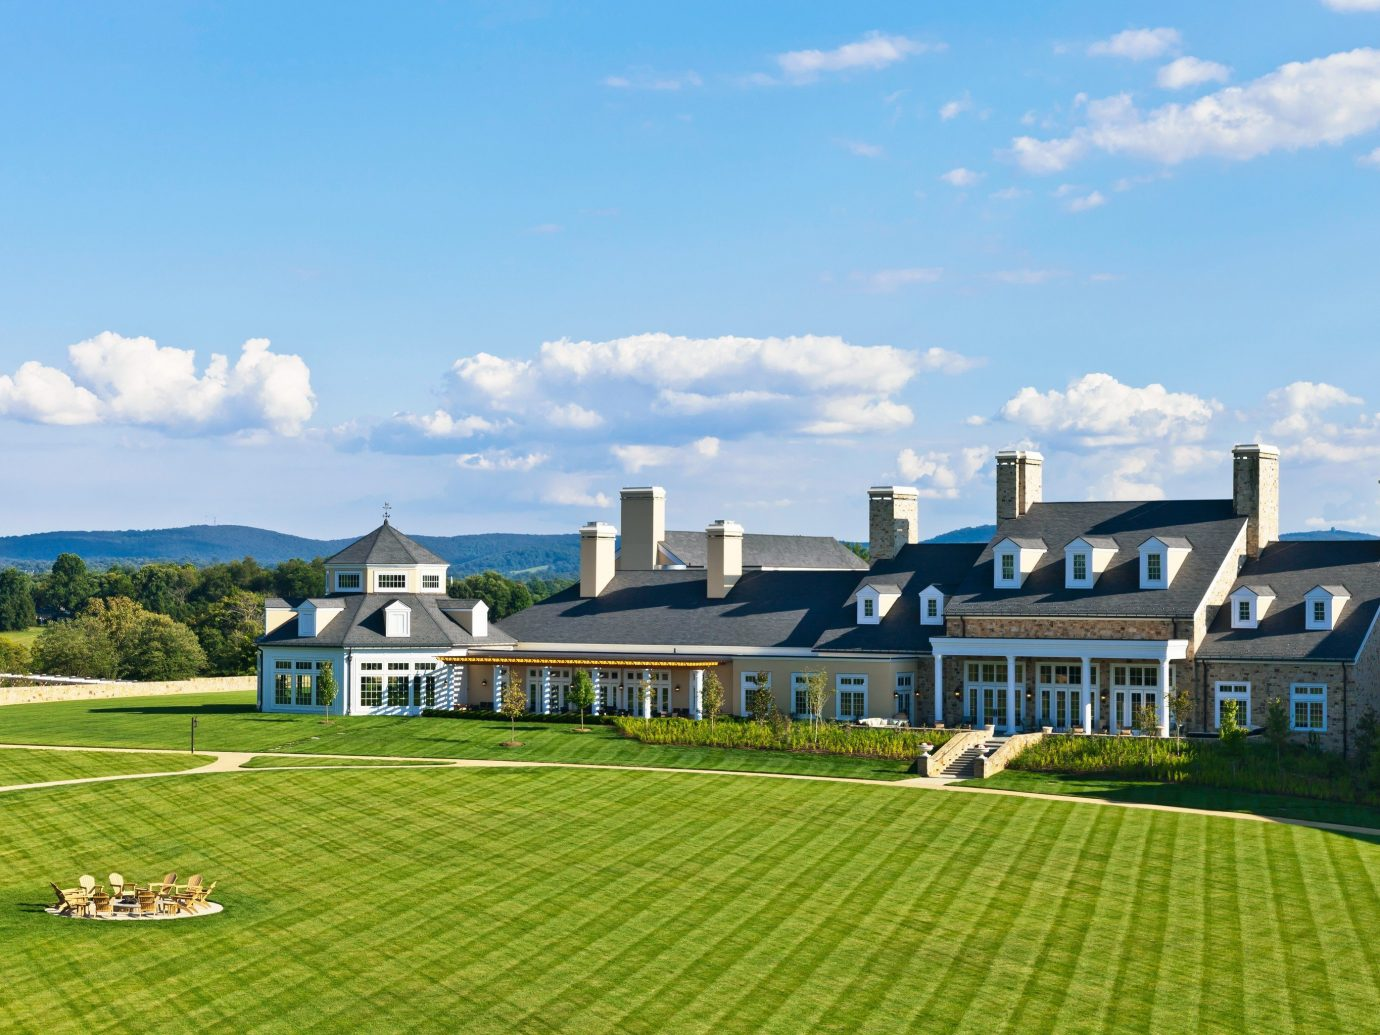 Hotels grass sky outdoor field property structure estate residential area green lawn sport venue home Resort suburb grassy lush